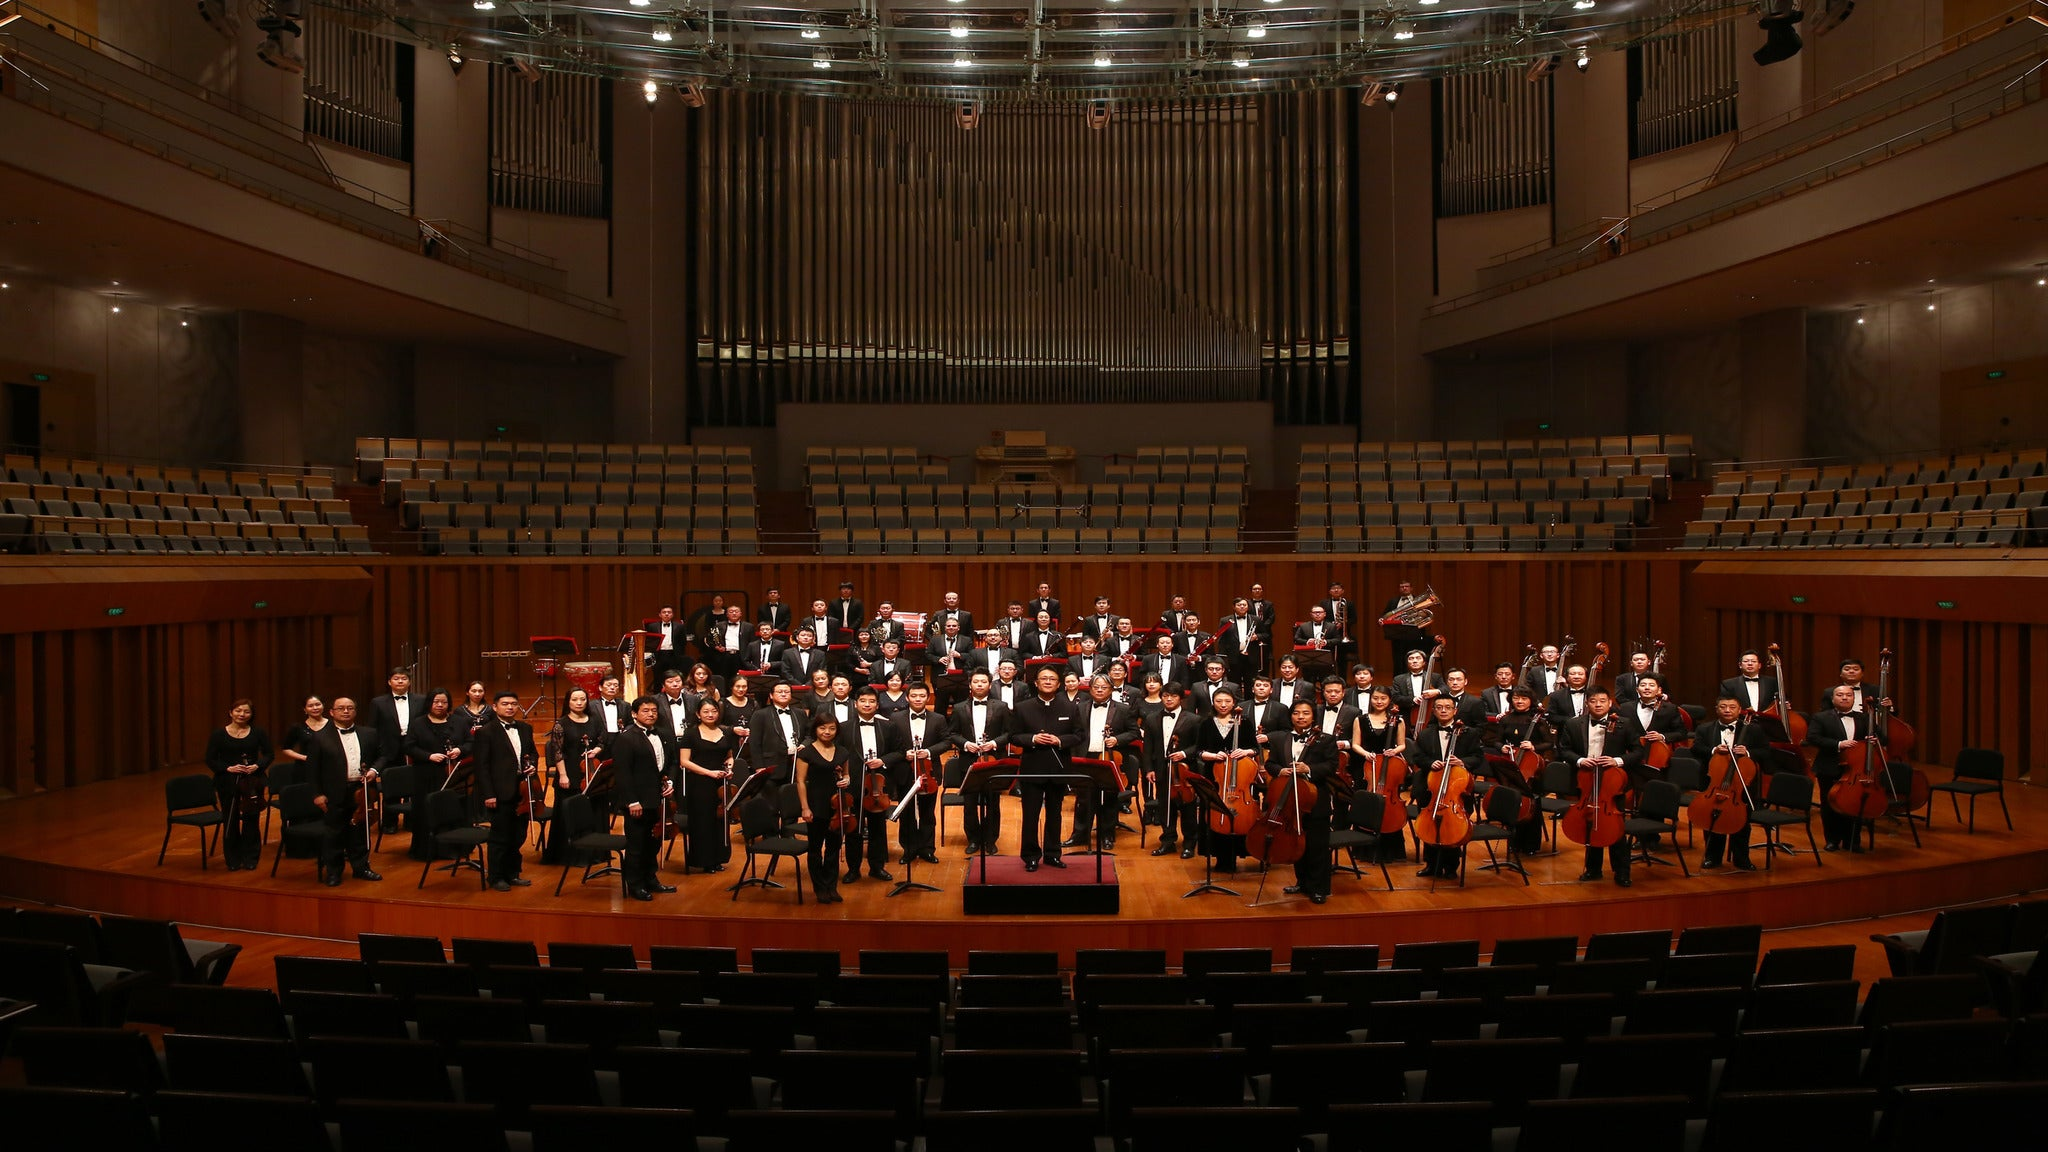 Beijing Symphony Orchestra at Kennedy Center - Concert Hall